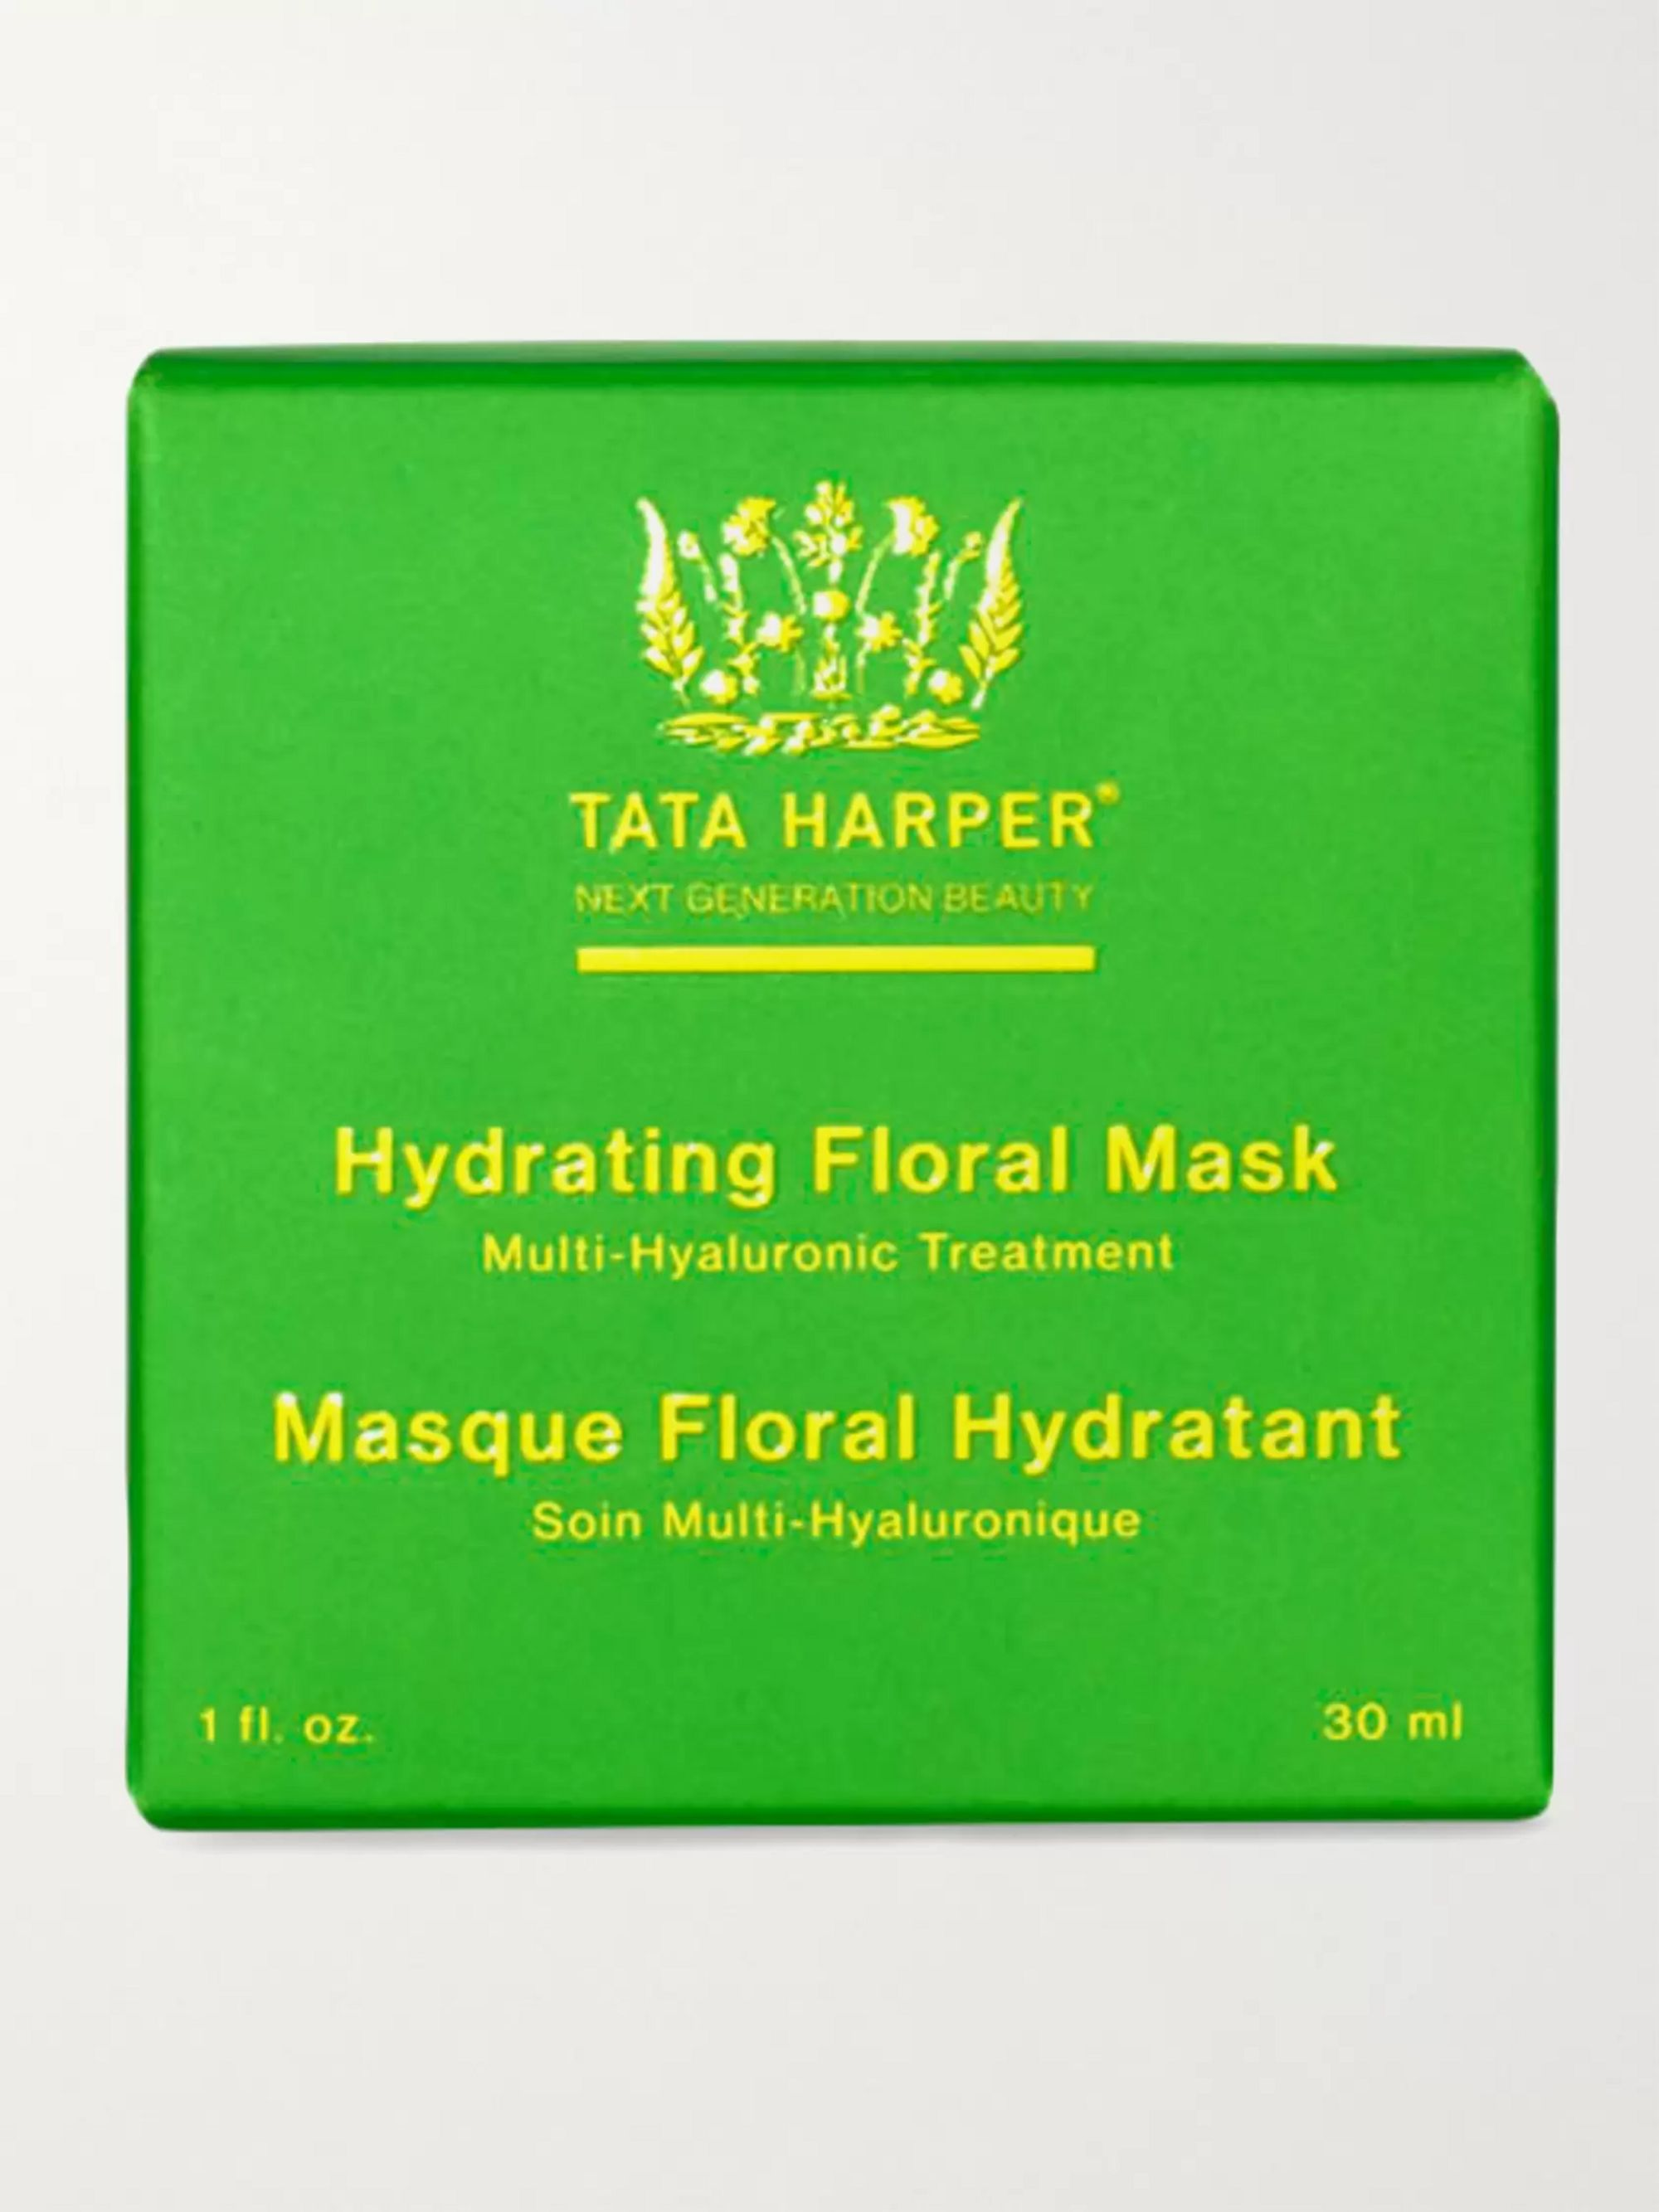 TATA HARPER Hydrating Floral Mask, 30ml